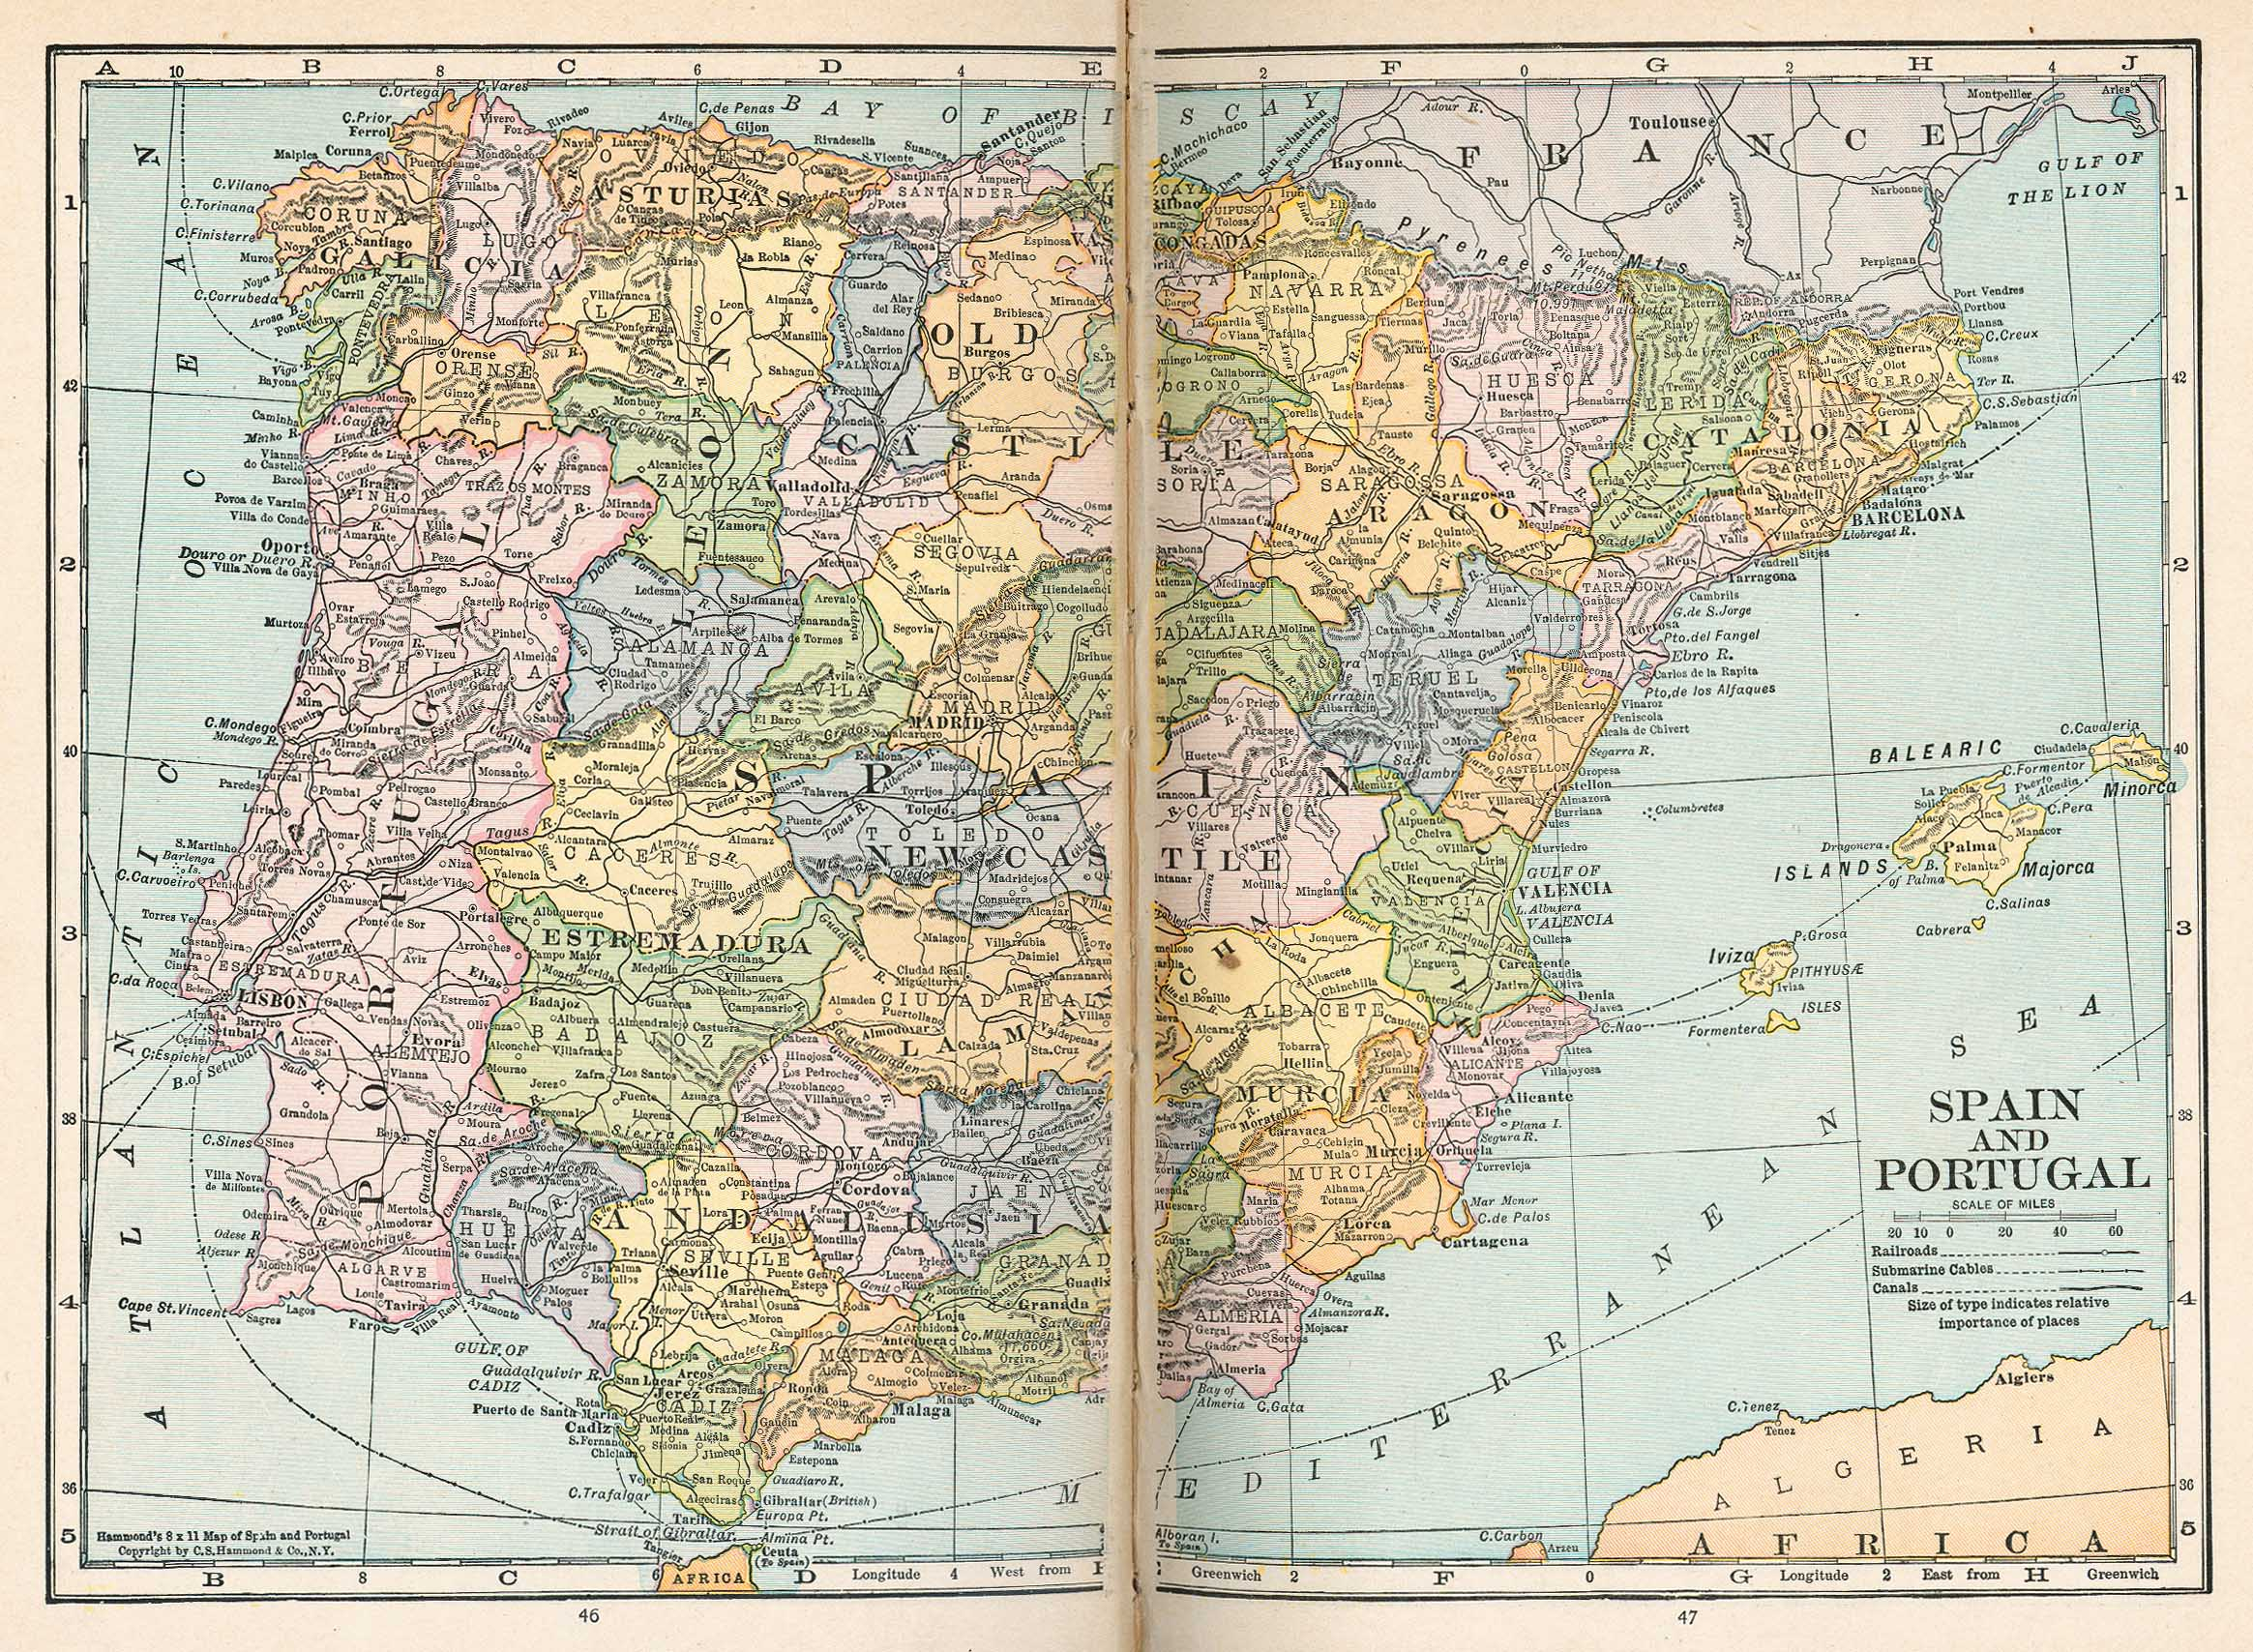 Map of Portugal and Spain, 1921